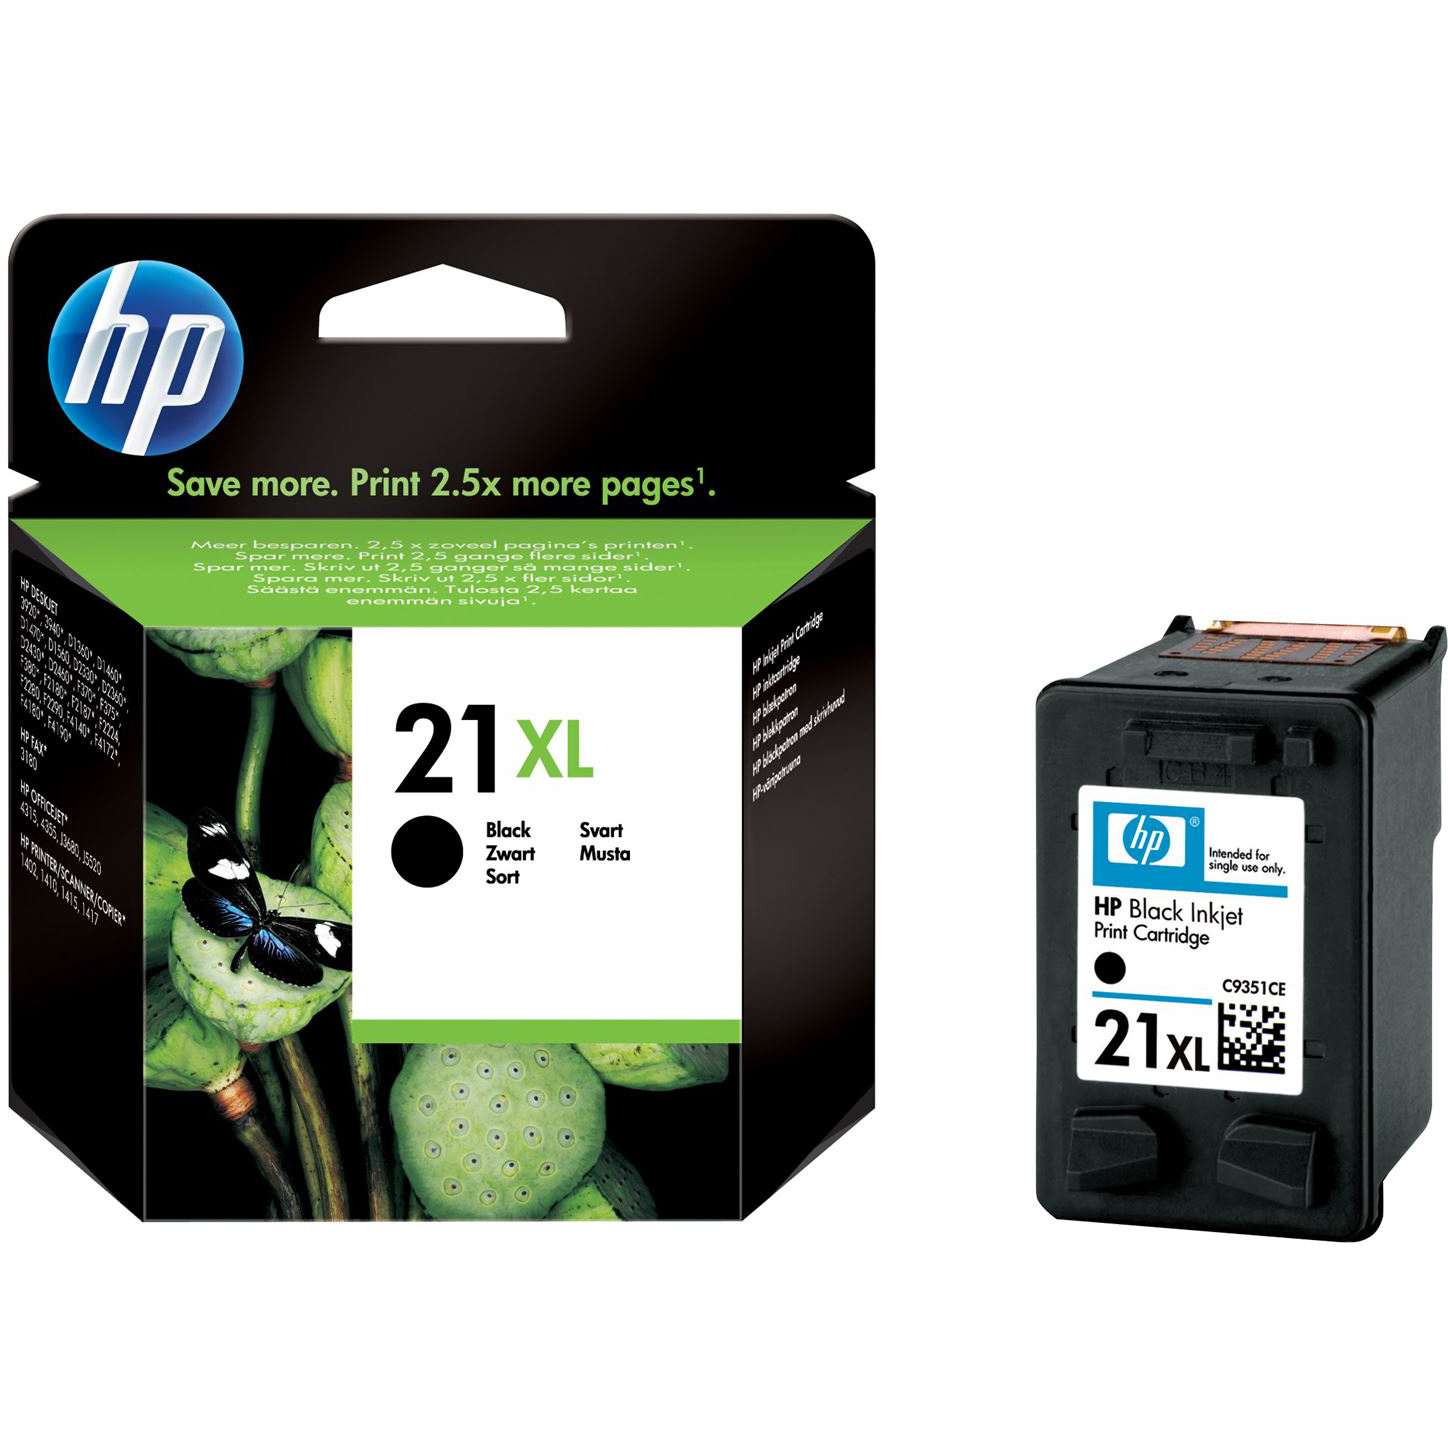 Original HP 21XL Black High Capacity Ink Cartridge (C9351CE)